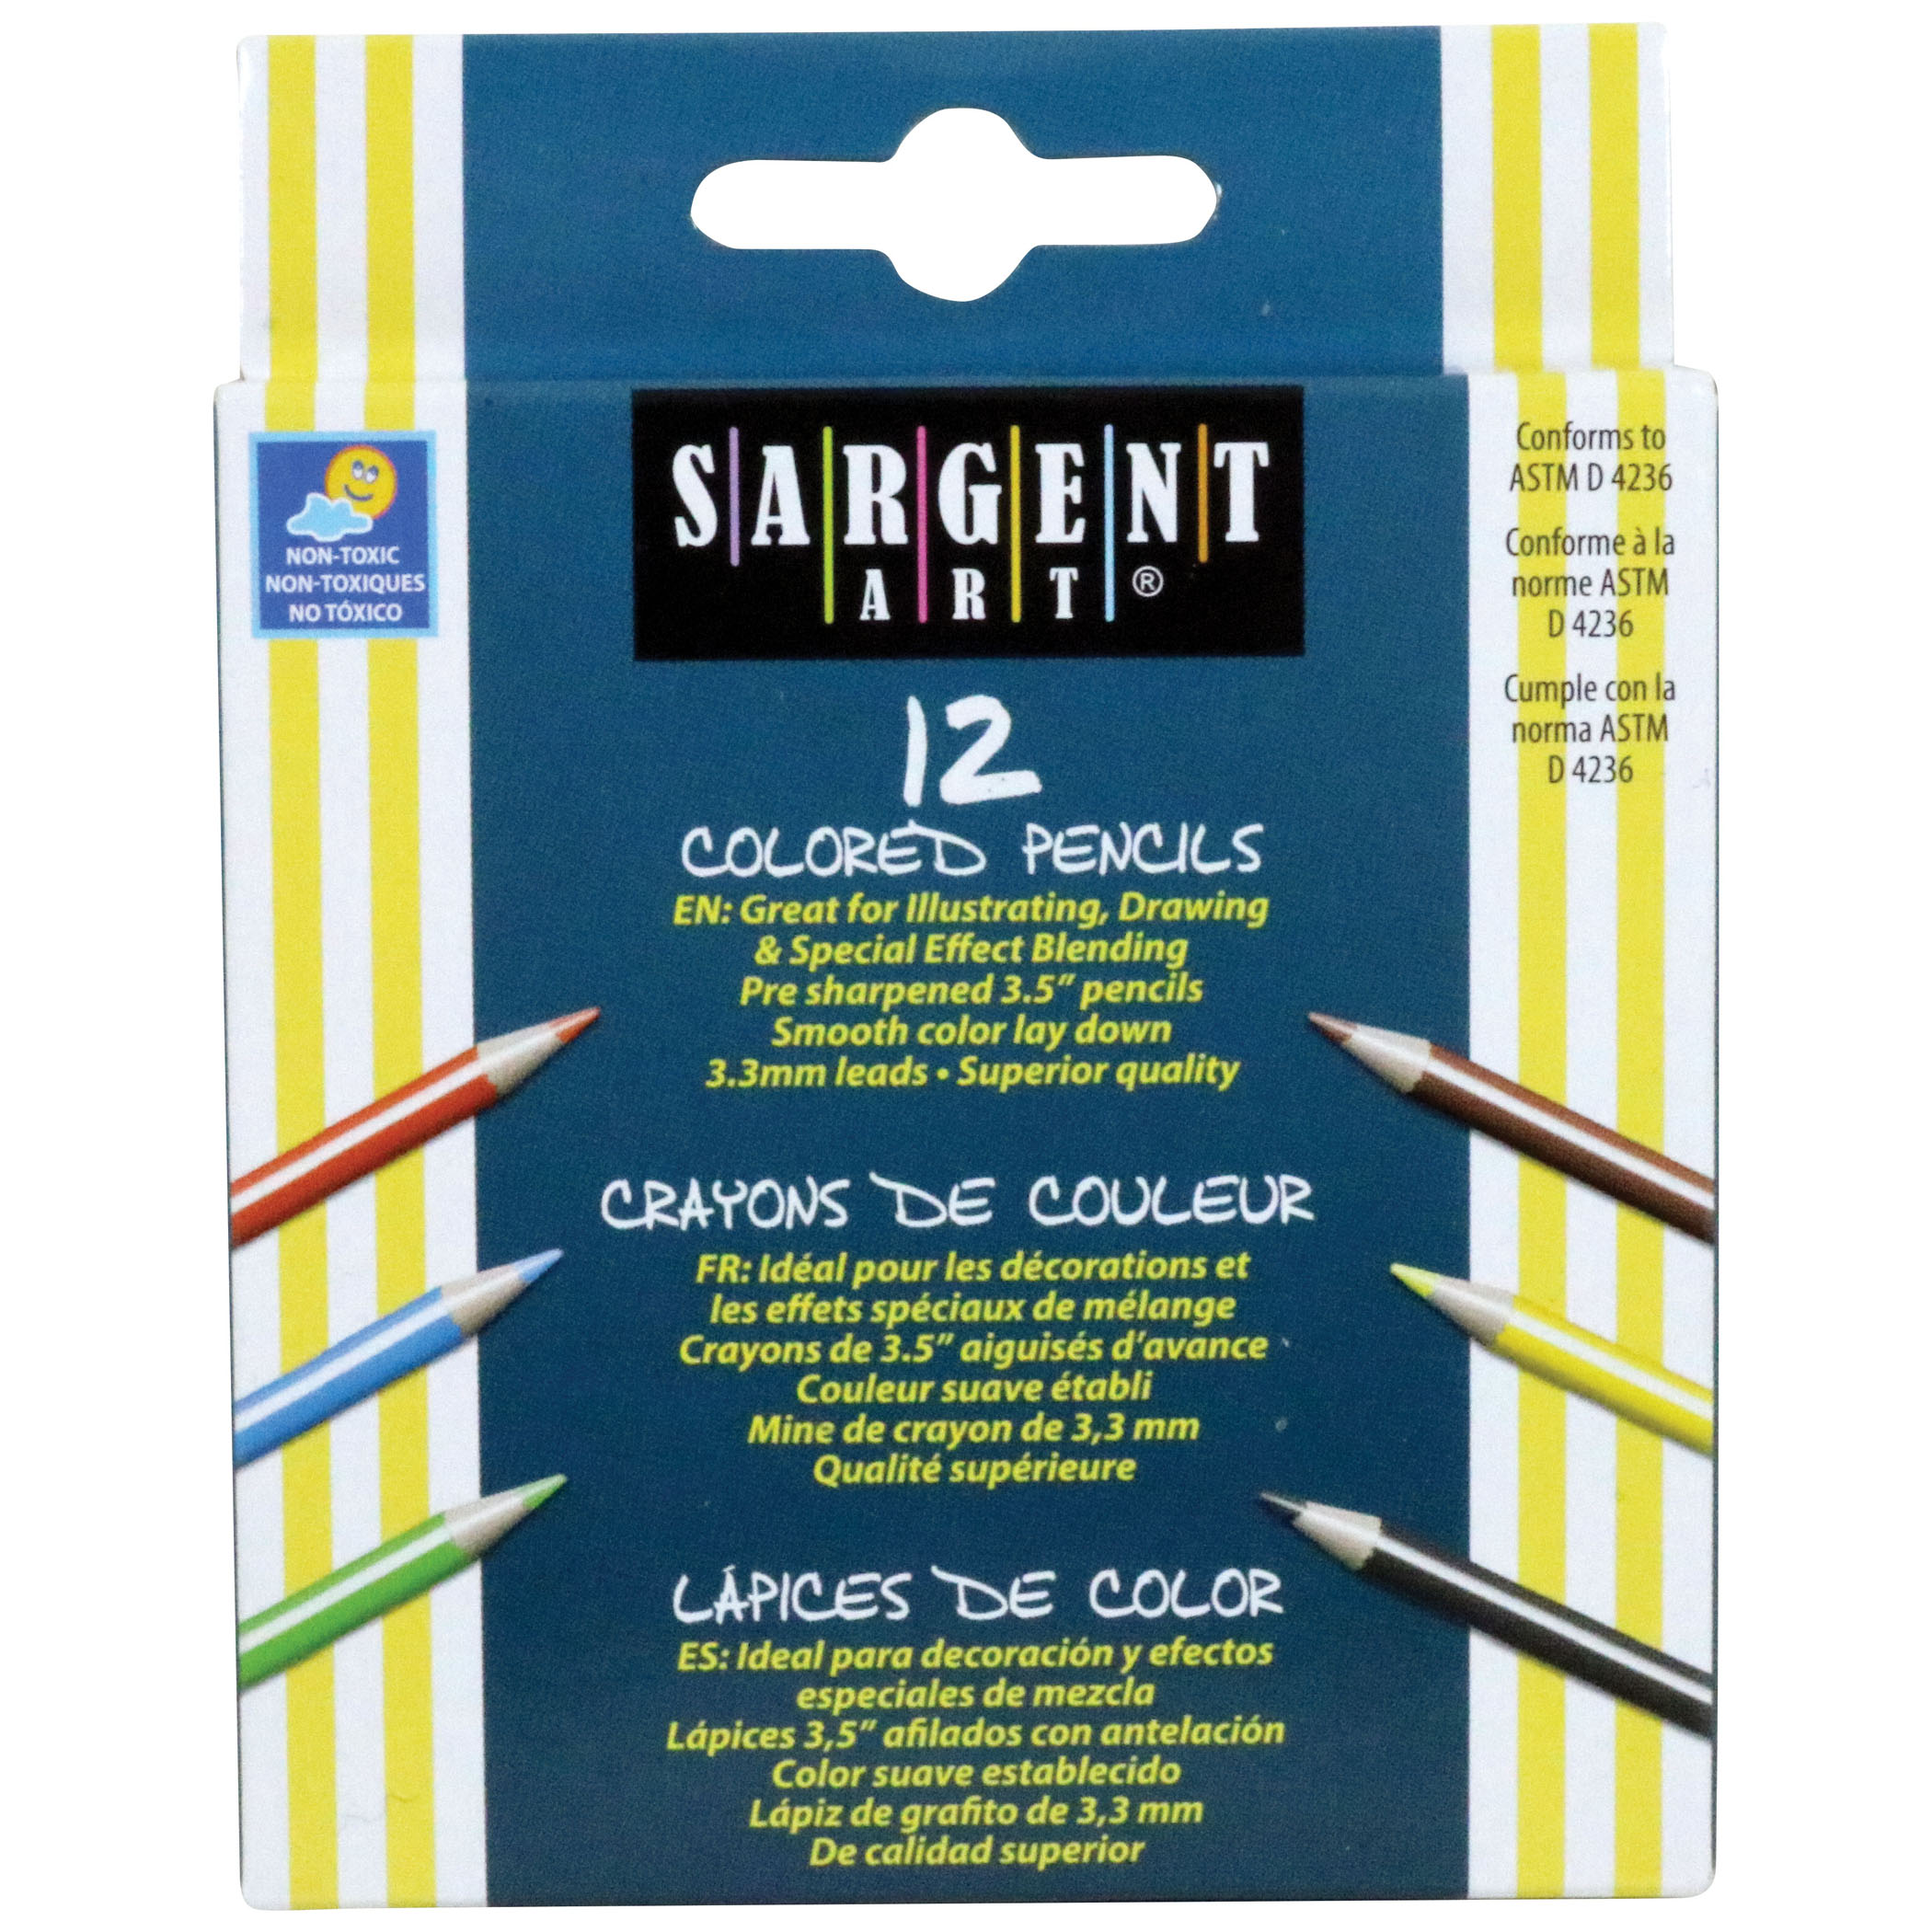 Sargent Art® Half Size Colored Pencils, 12 per pack, 24 packs